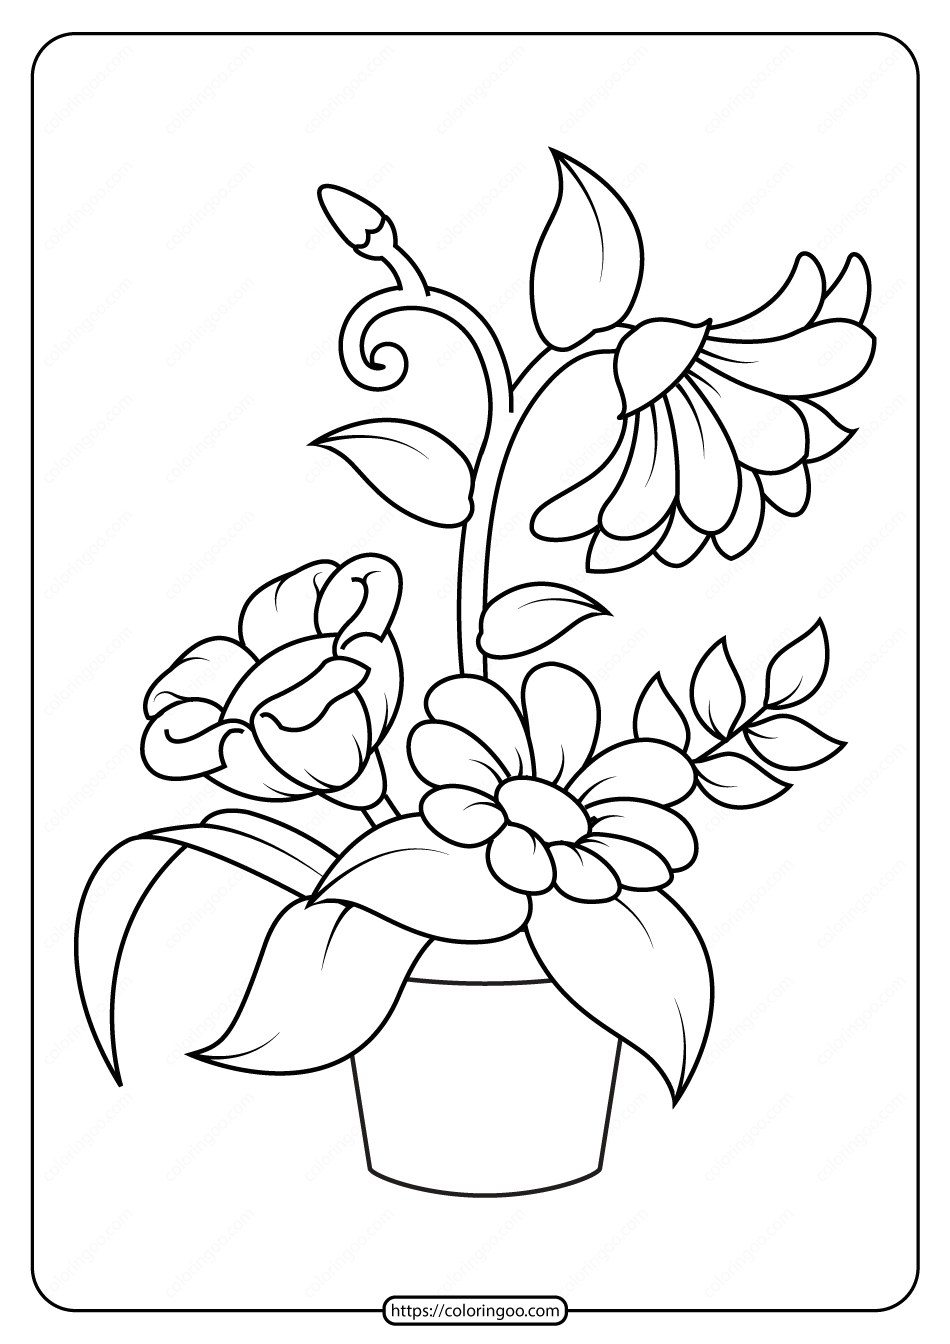 picture of flowers to print free printable rose and marigold flowers coloring page to of print flowers picture